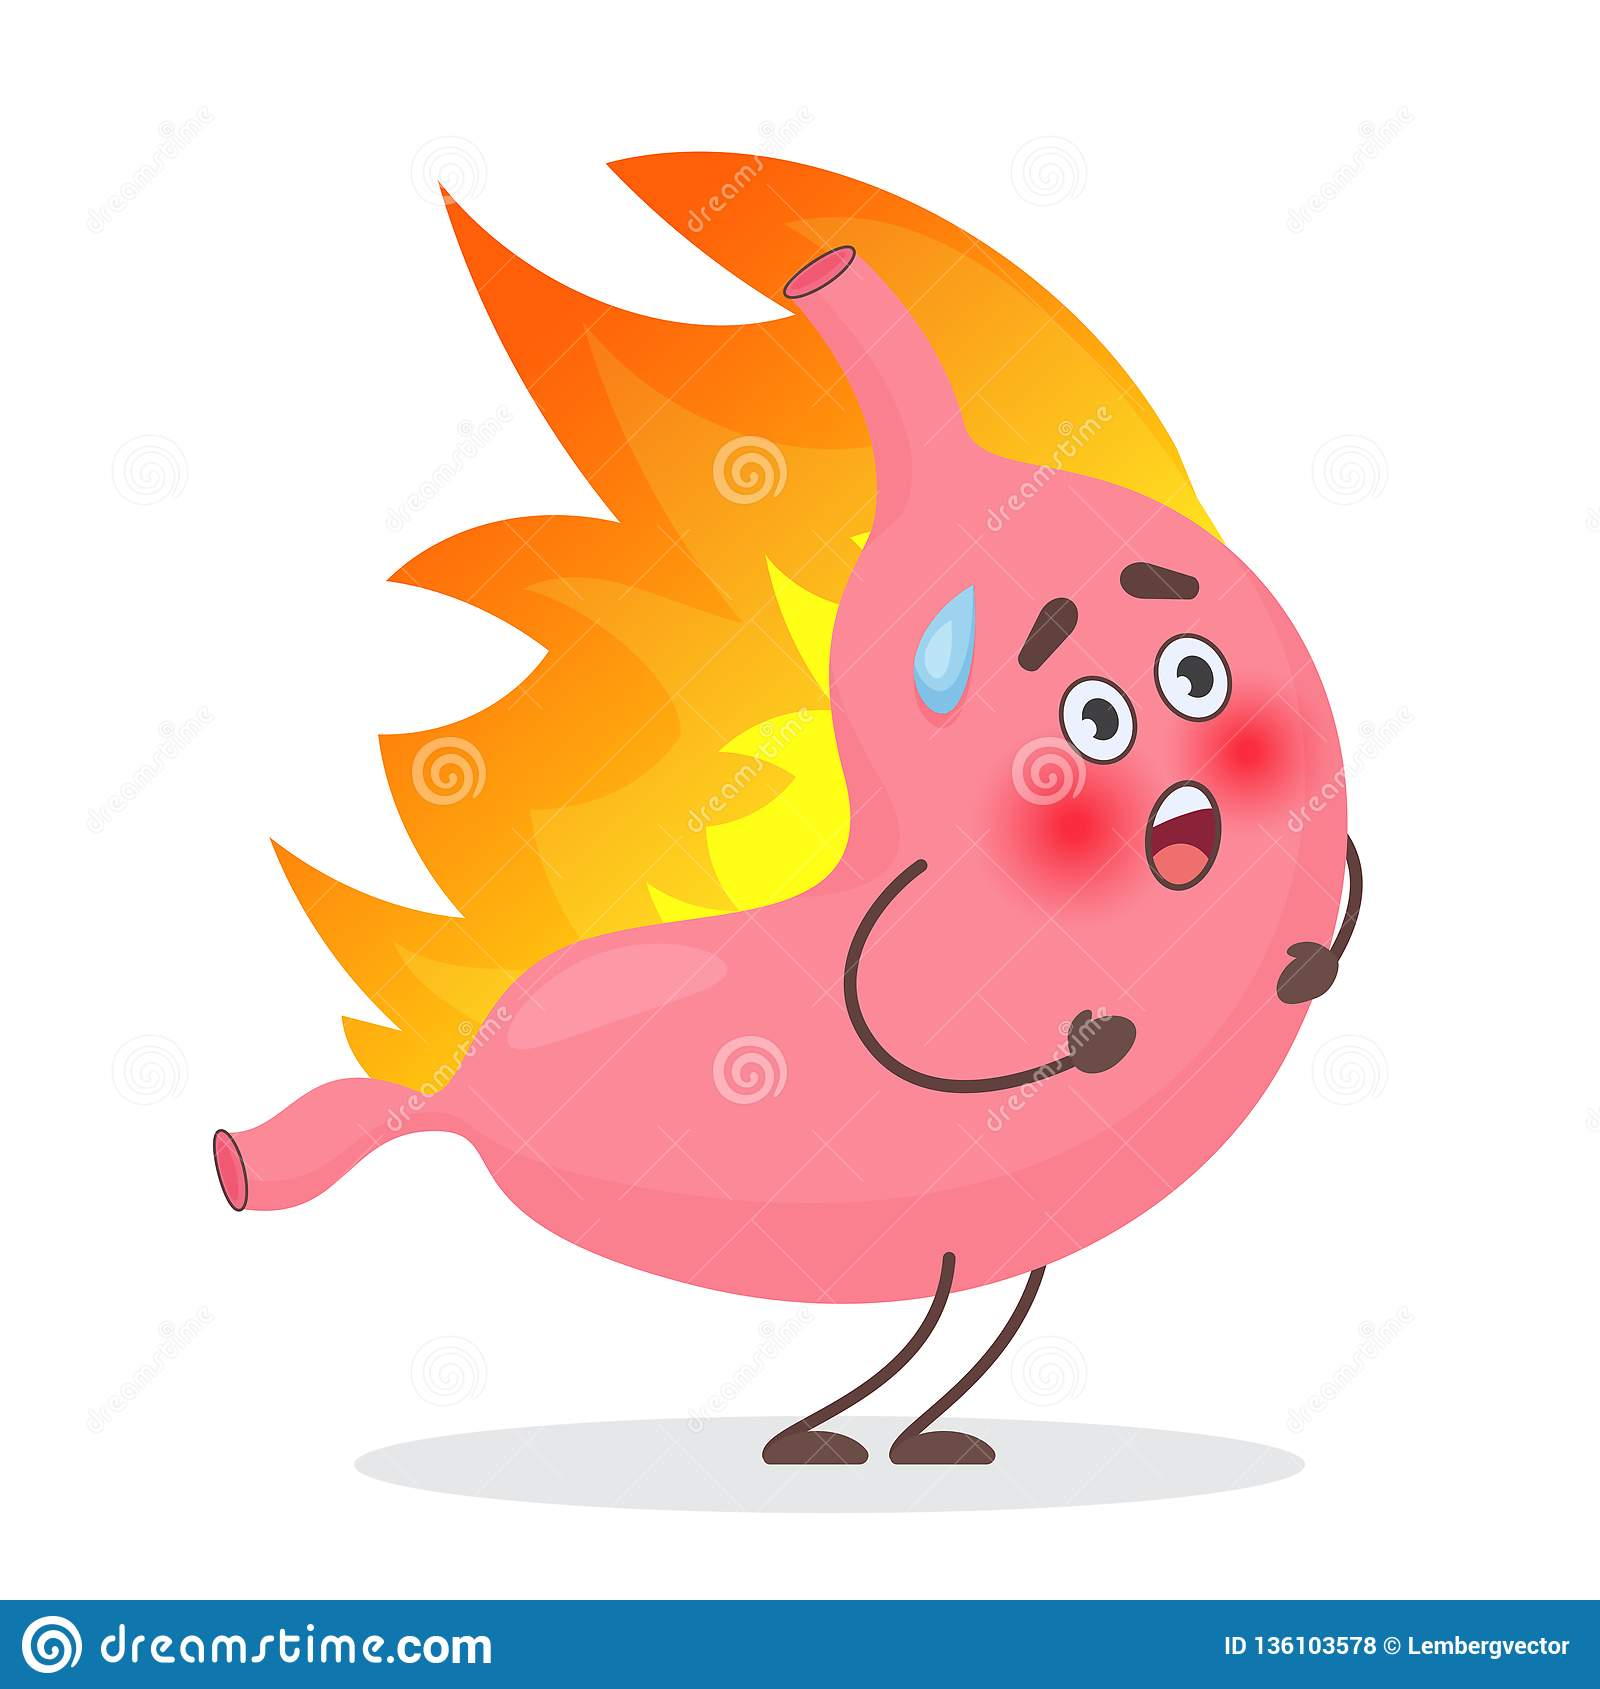 Cute Stomach emotions character in fire. Gastritis and acid reflux, indigestion and stomach pain problems vector concept